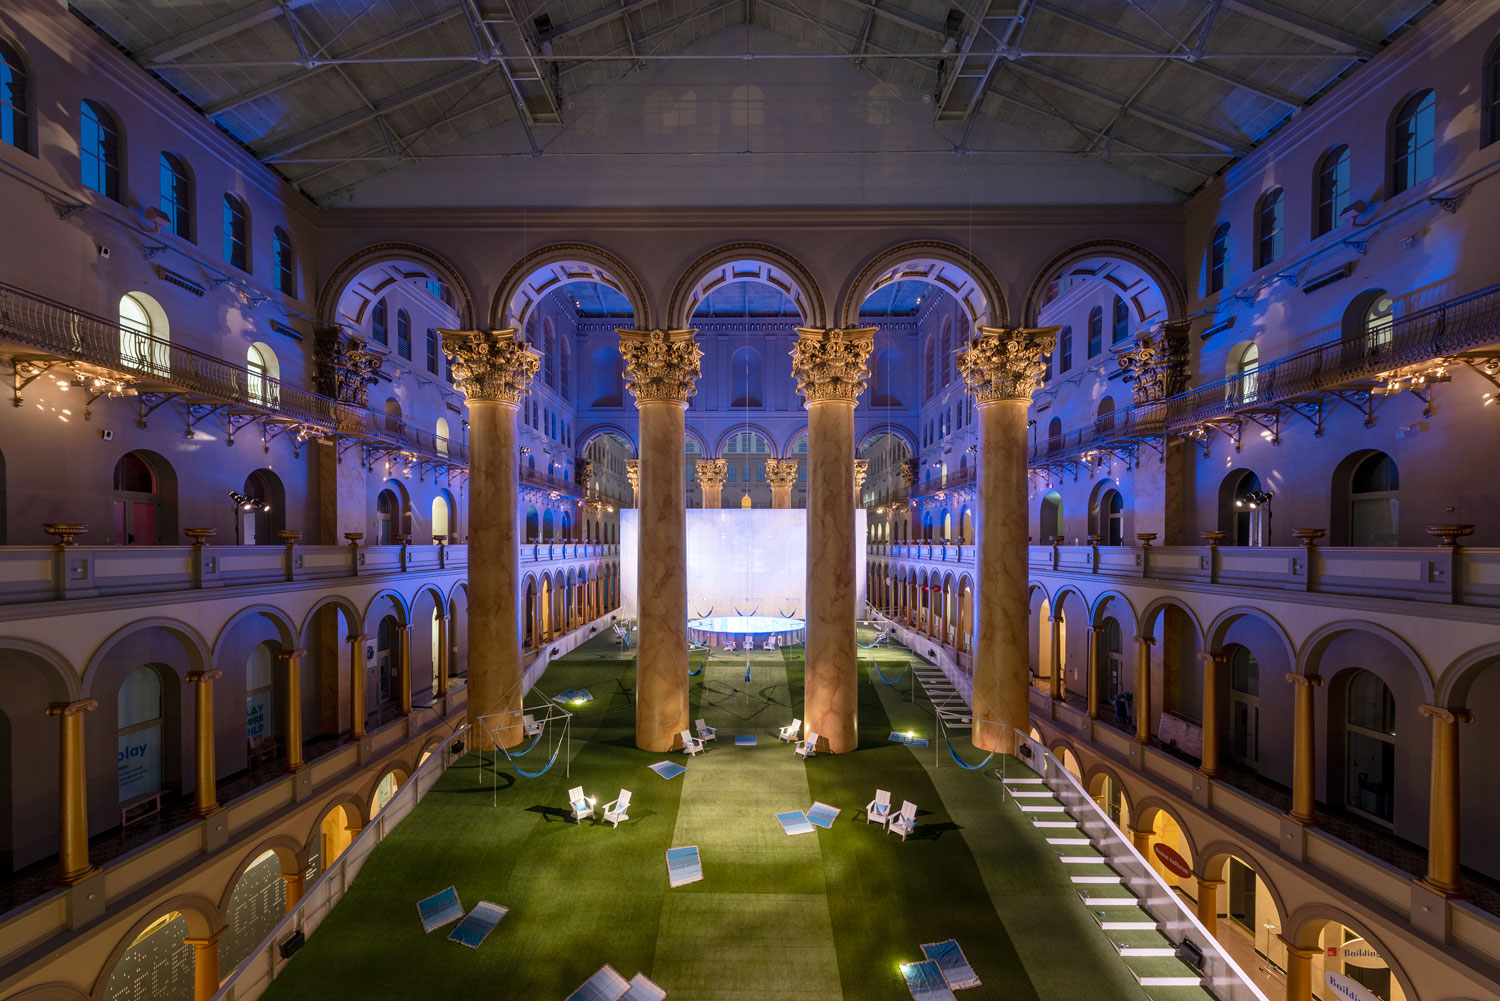 Inside of the National Building Museum, a lawn weaves between great pillars